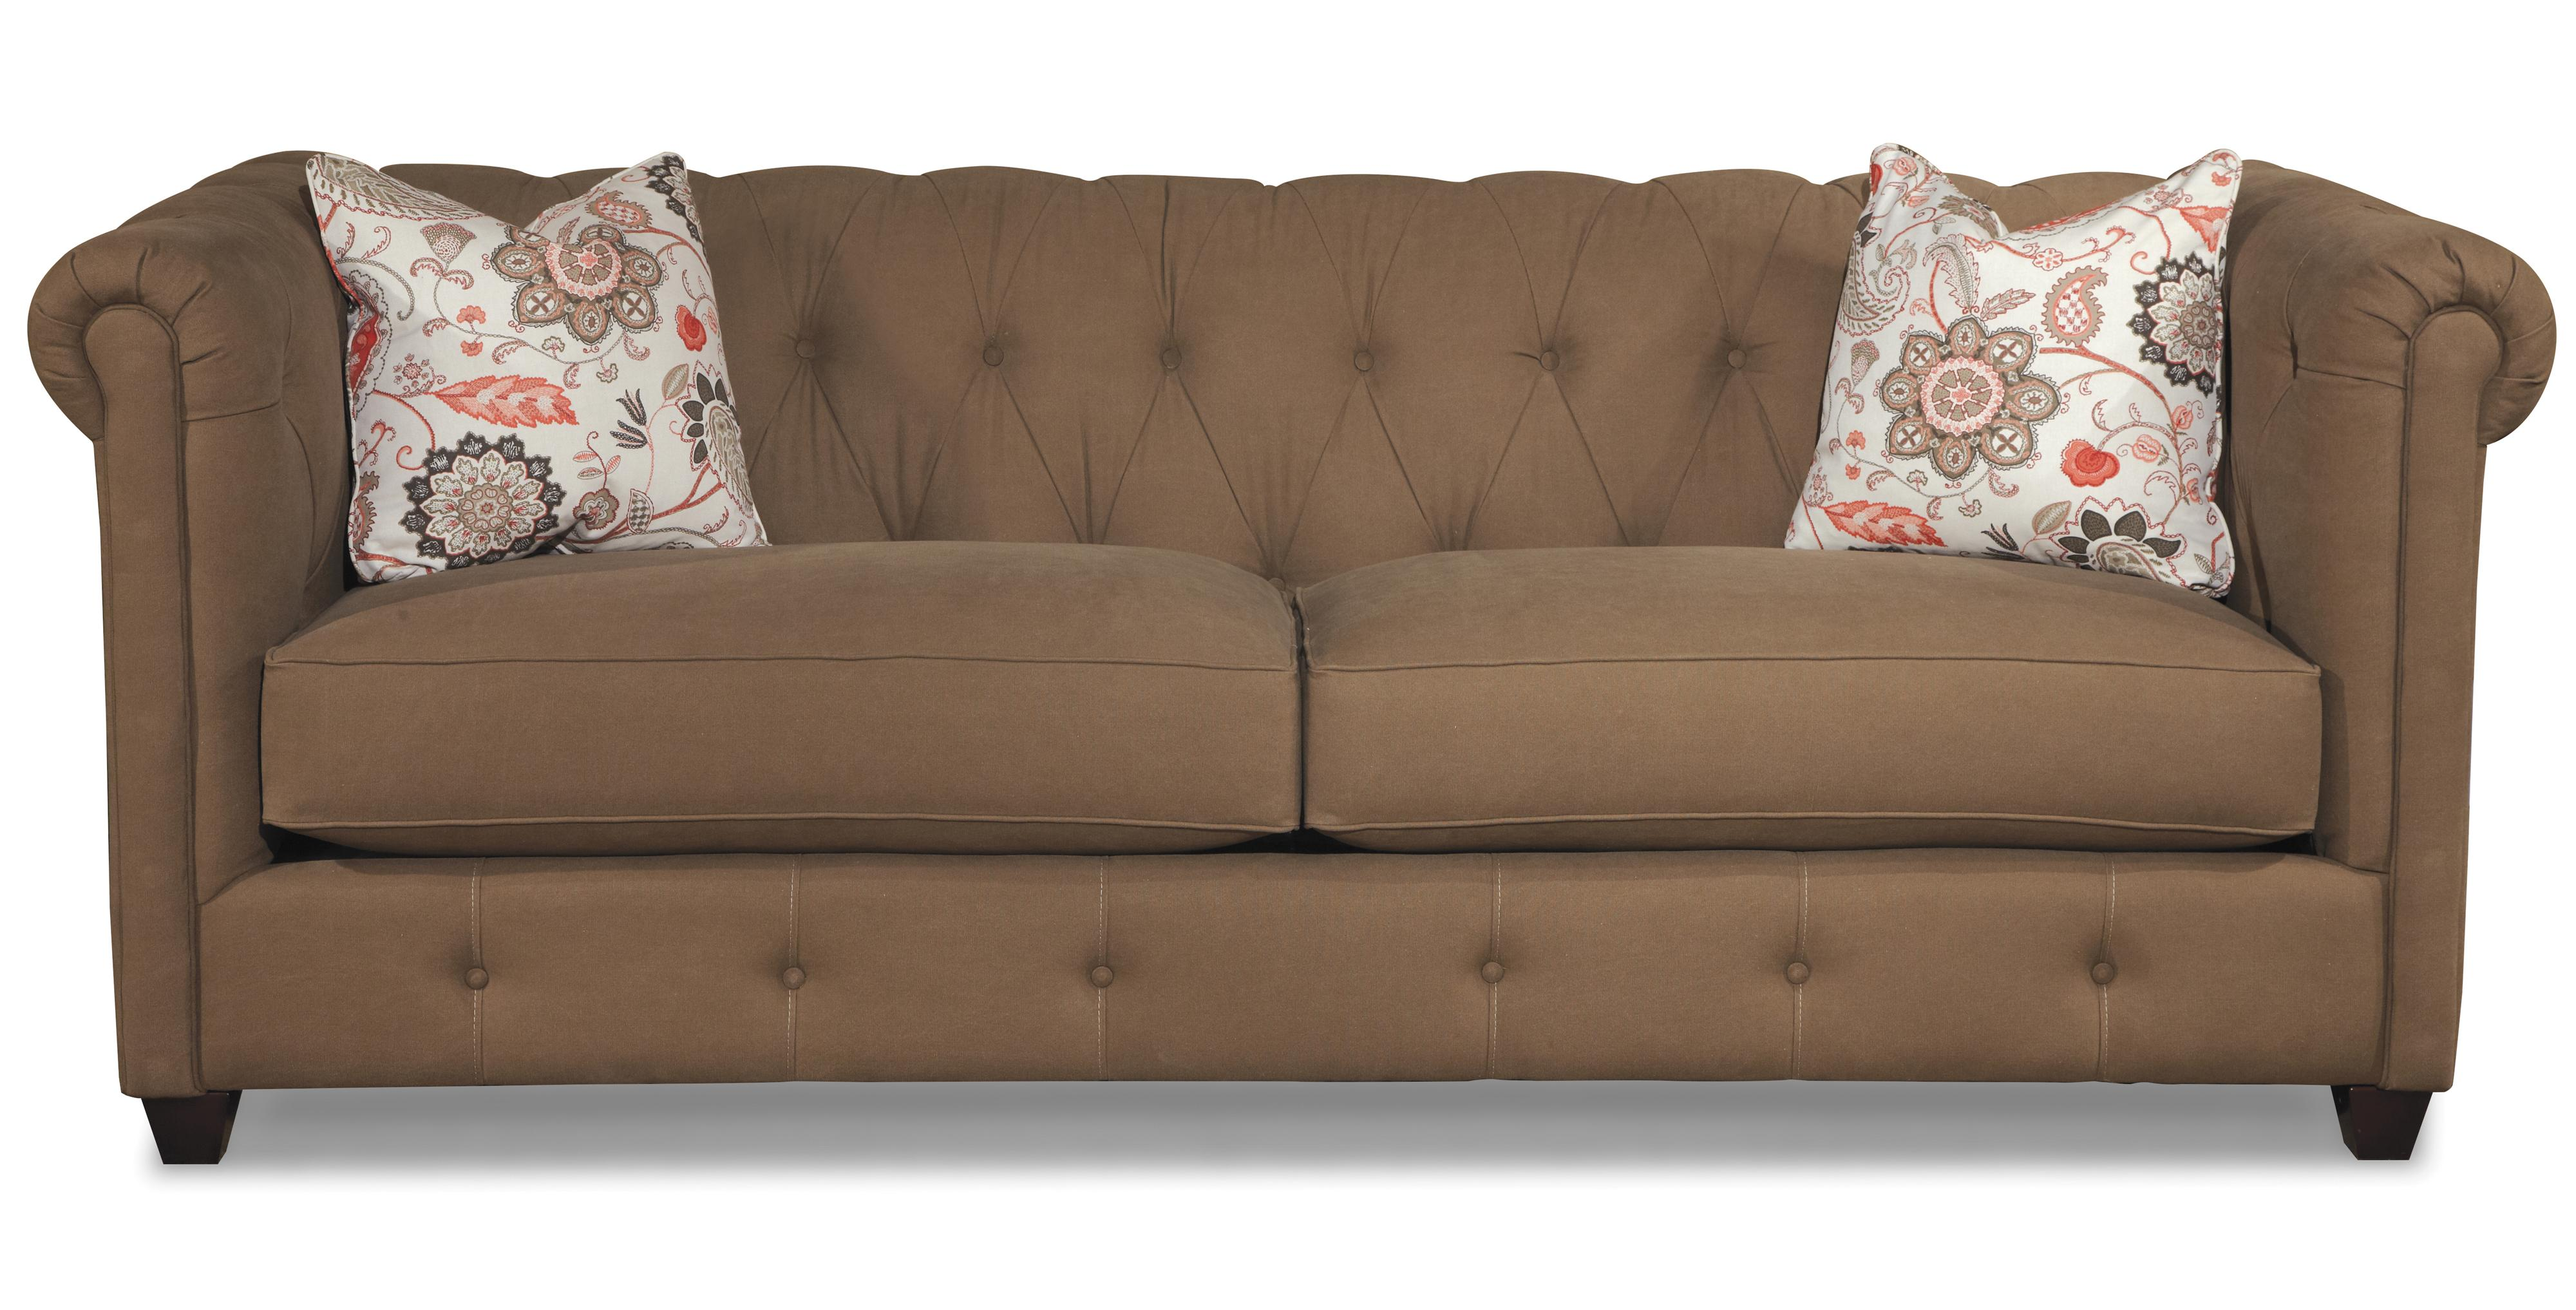 Klaussner Beech Mountain Traditional Chesterfield Sofa with Downblend Cushions Value City